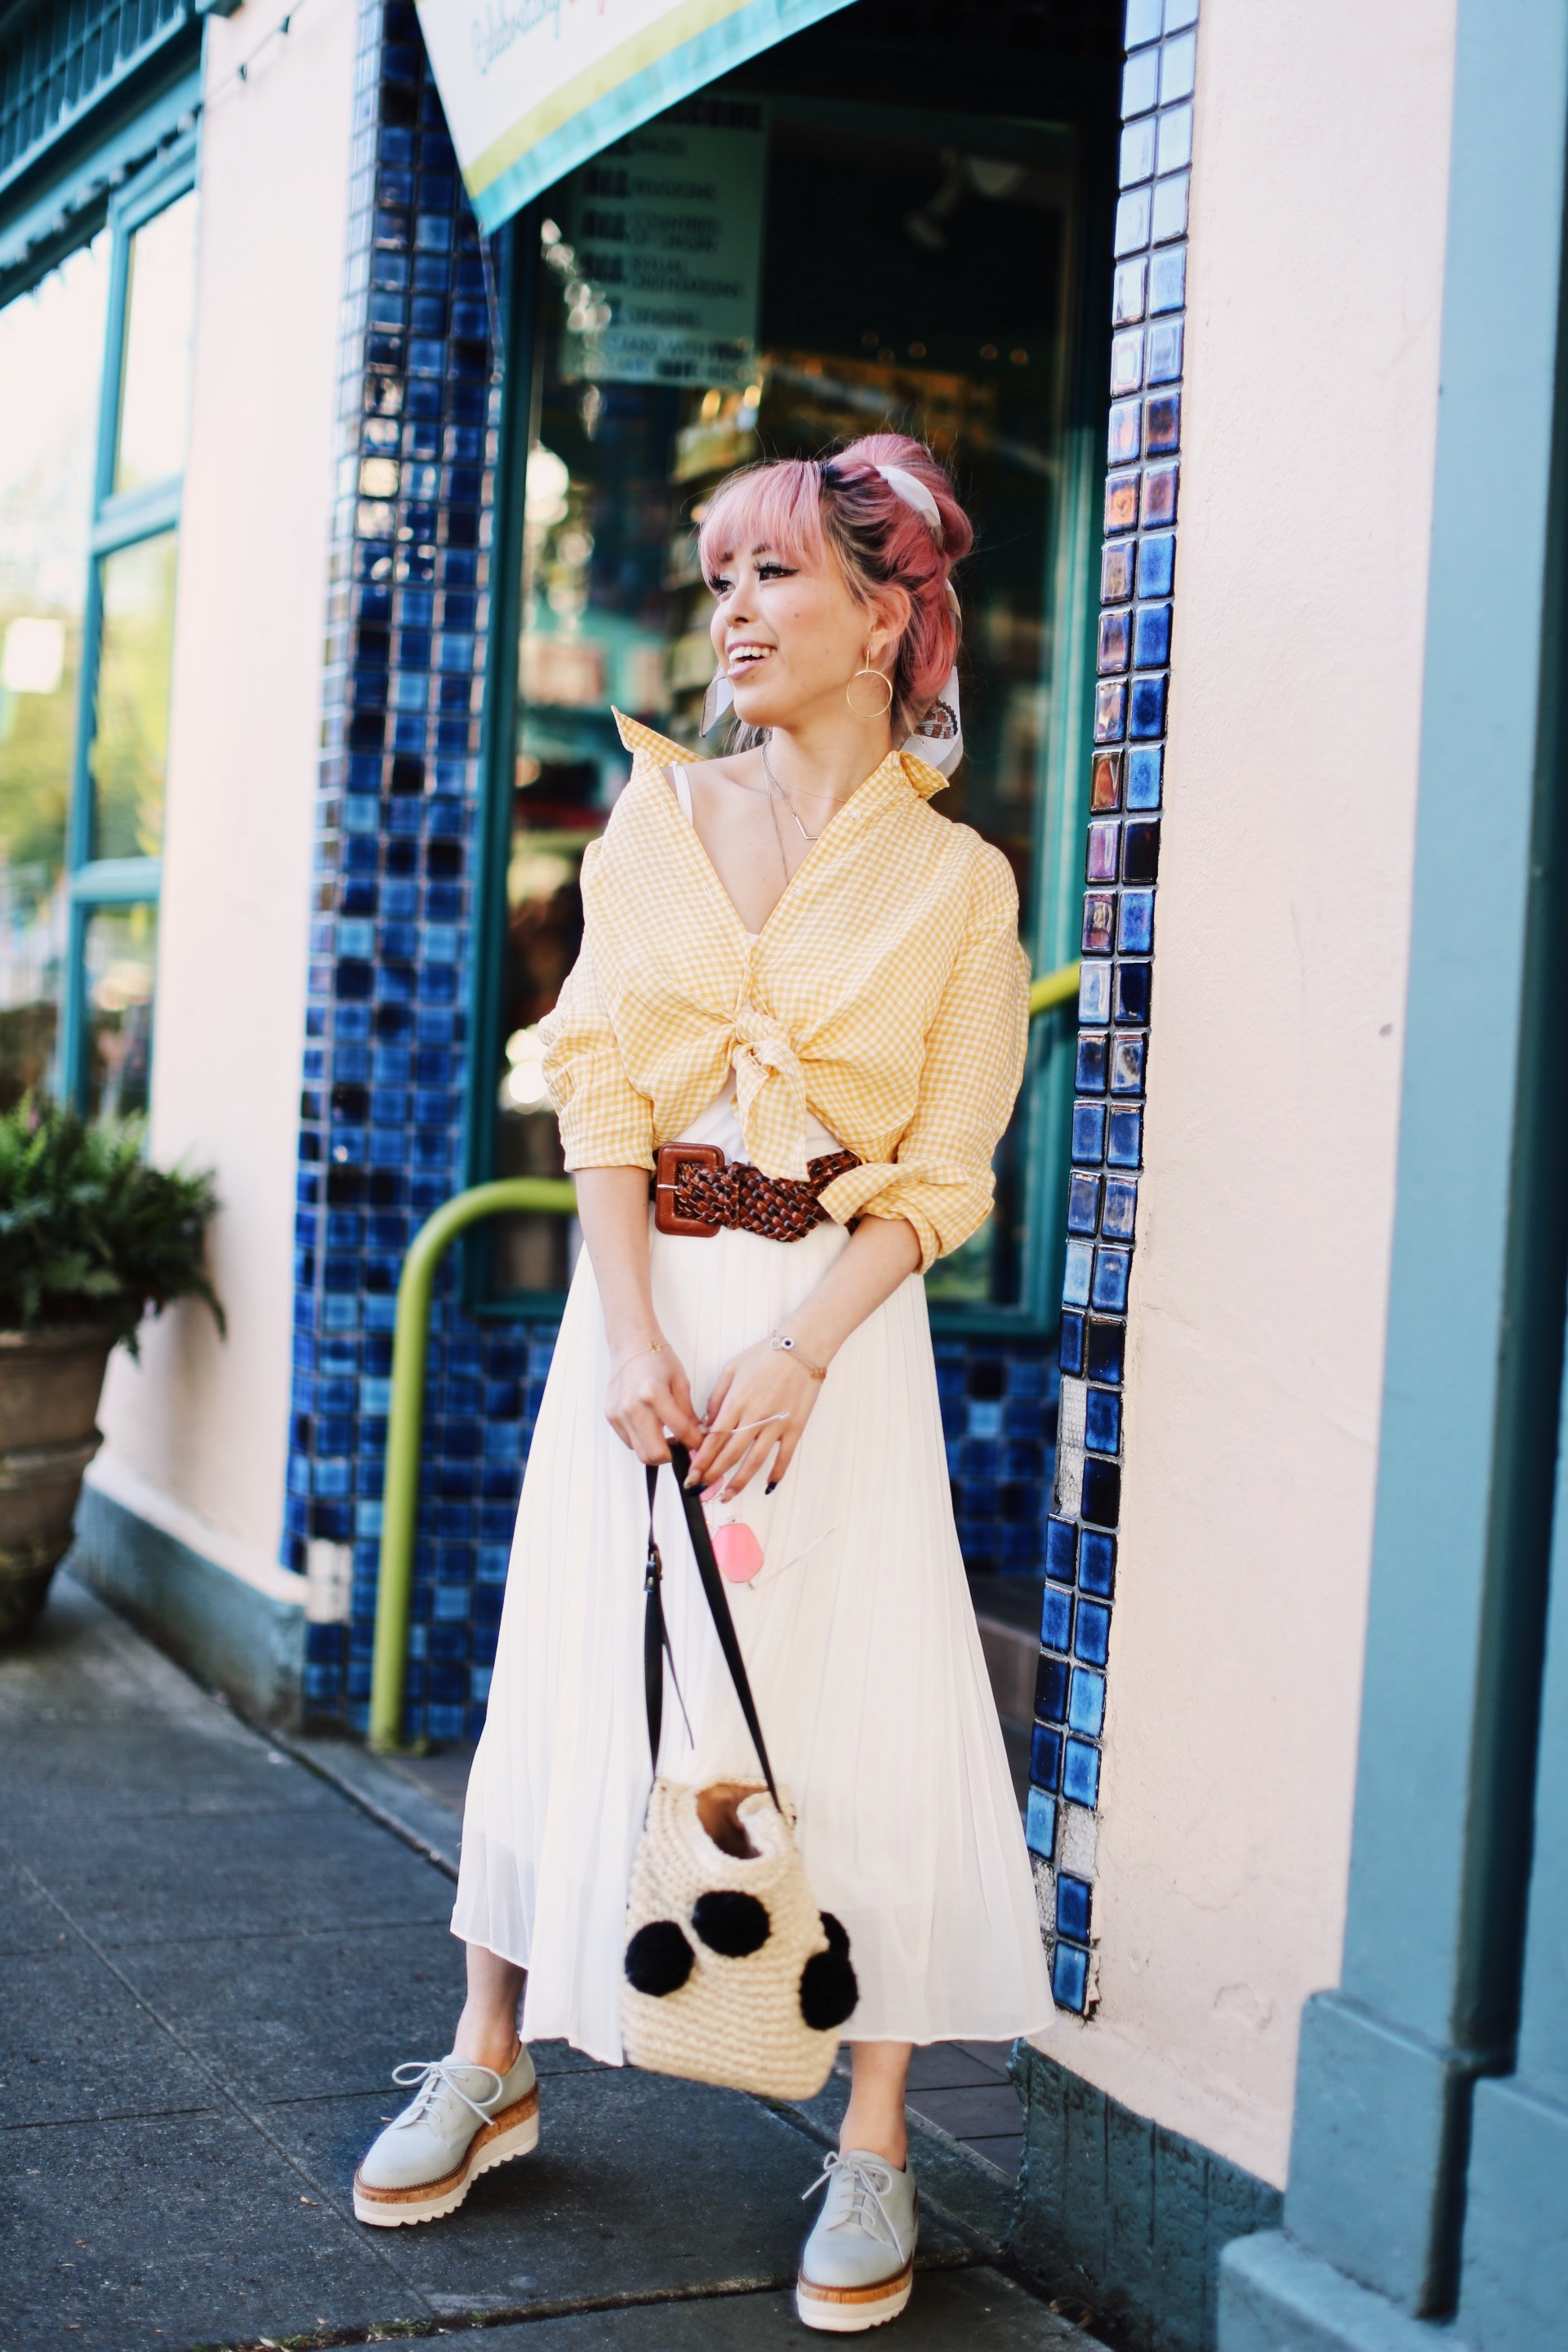 Uniqlo yellow Linen gingham shirt-Uniqlo White pleated chiffon midi skirt-Uniqlo Airism brat-pink tinted sunglasses ZERO UV-She in Pom pom Straw bucket bag-Vintage scarf bun hair style-Steve Madden Belt-Jane and the shoe denim oxford platforms-Aika's Love Closet-seattle fashion style blogger-Japanese-pink hair-smiling-spring fashion 15